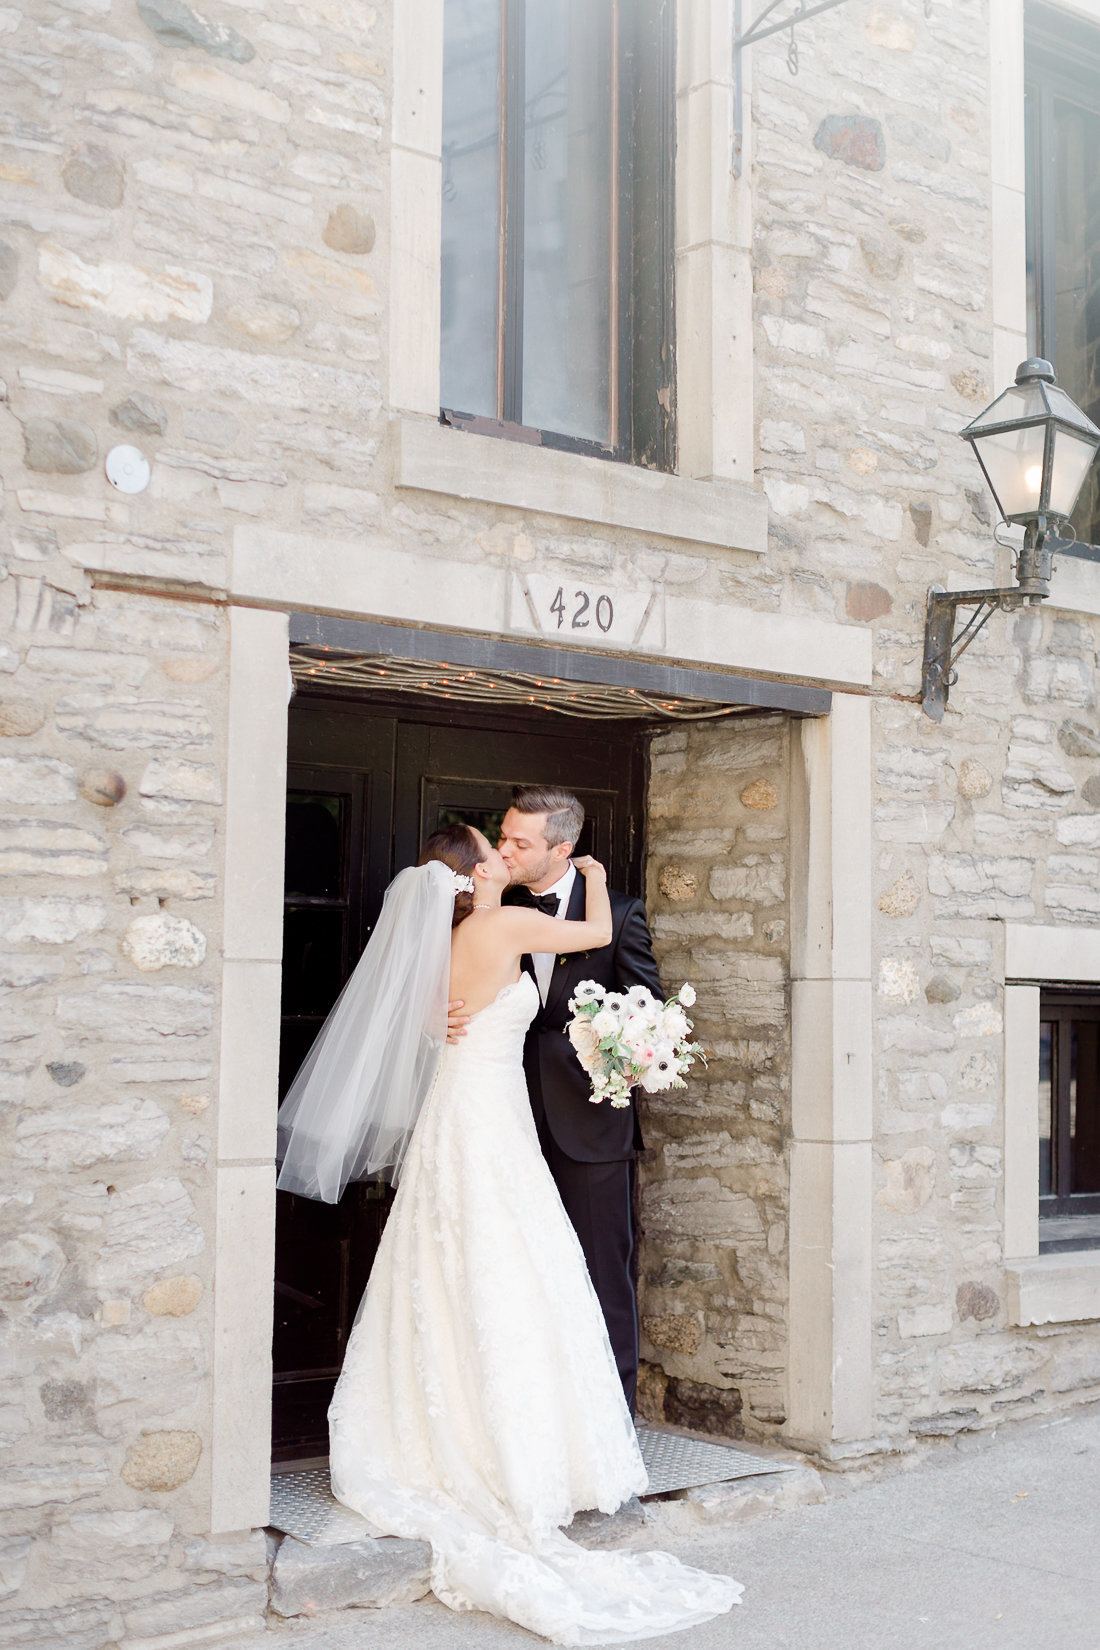 photographe-mariage-auberge-saint-gabriel-lisa-renault-photographie-montreal-wedding-photographer-70